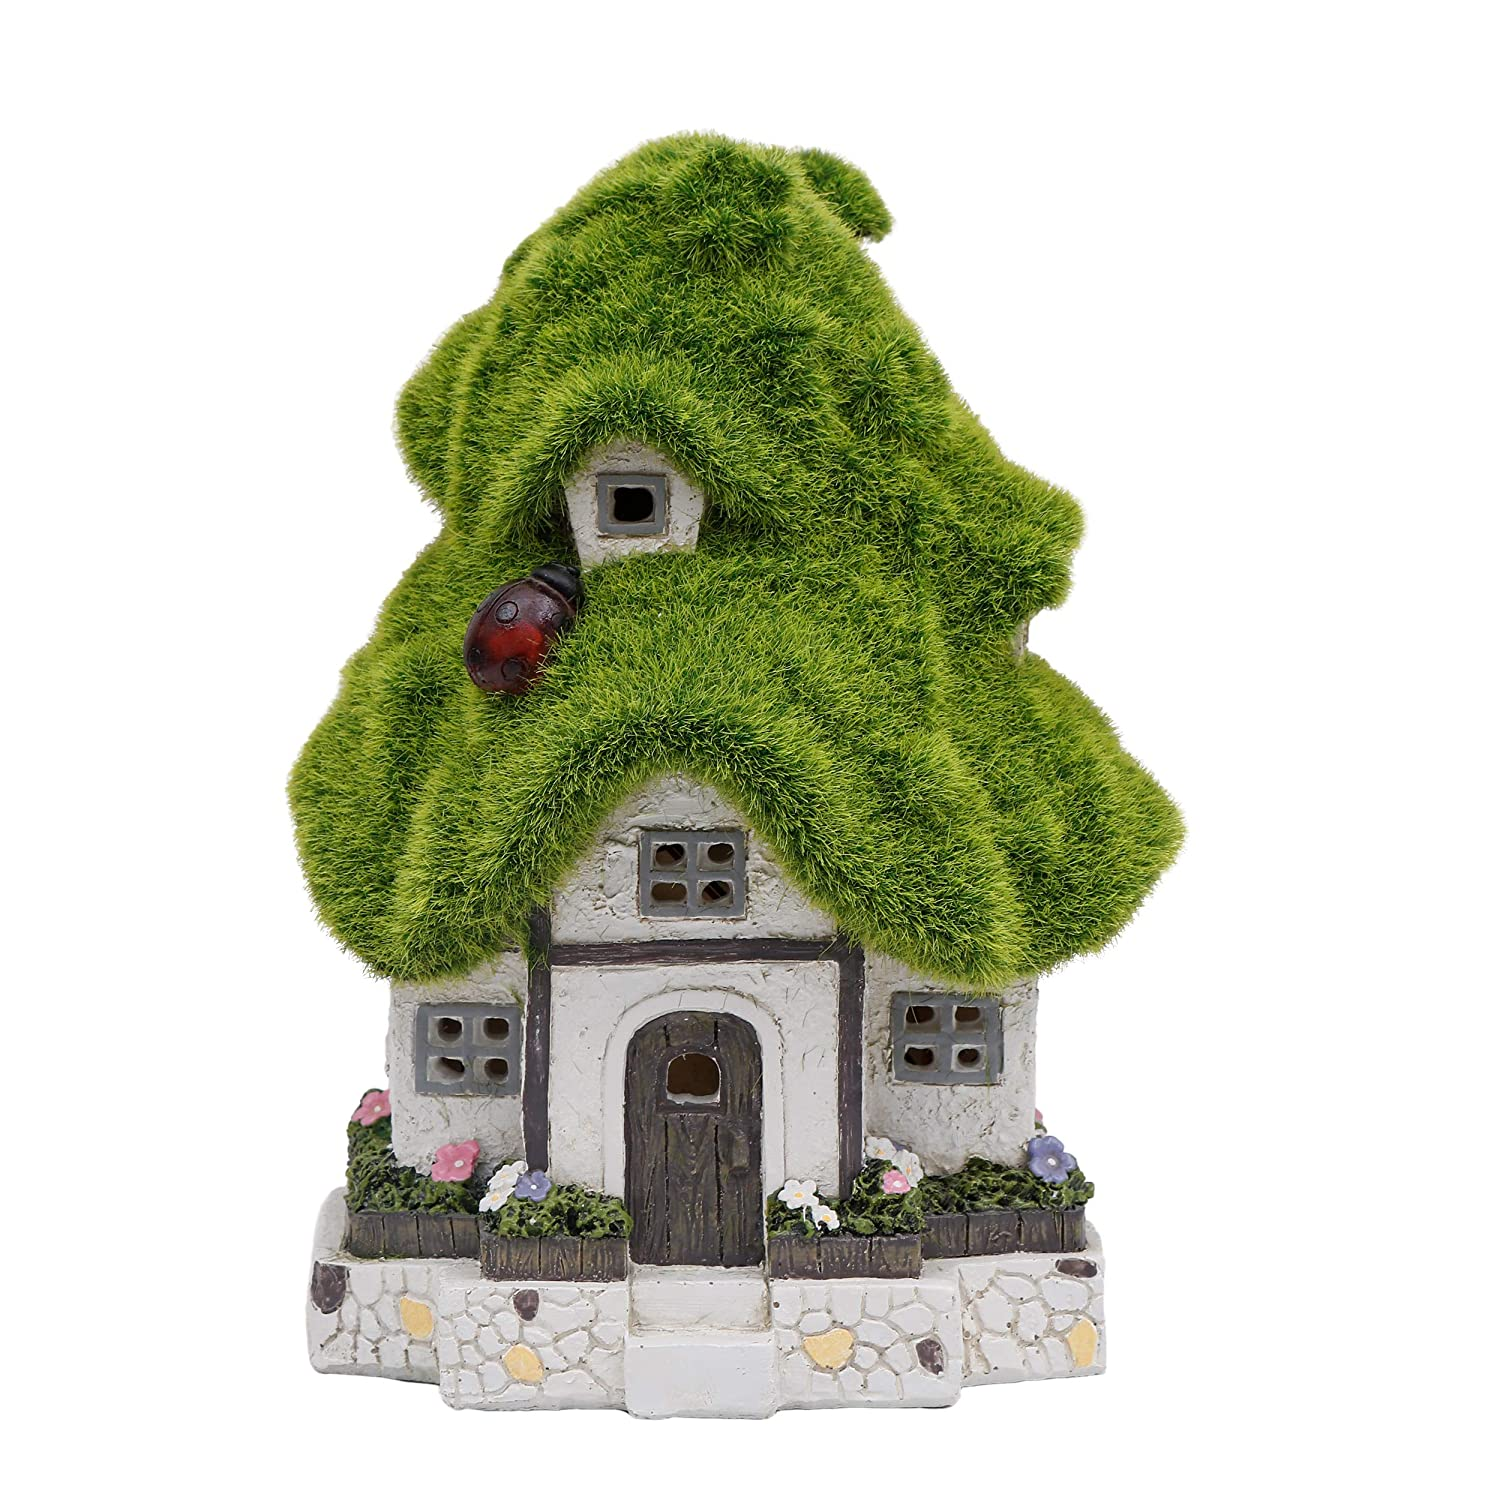 TERESA'S COLLECTIONS Flocked Green House Fairy Garden Statue, Outdoor Resin Statues with Solar Lights, Garden Cottage Figurines for Outdoor Home Yard Decor (8 Inch Tall)